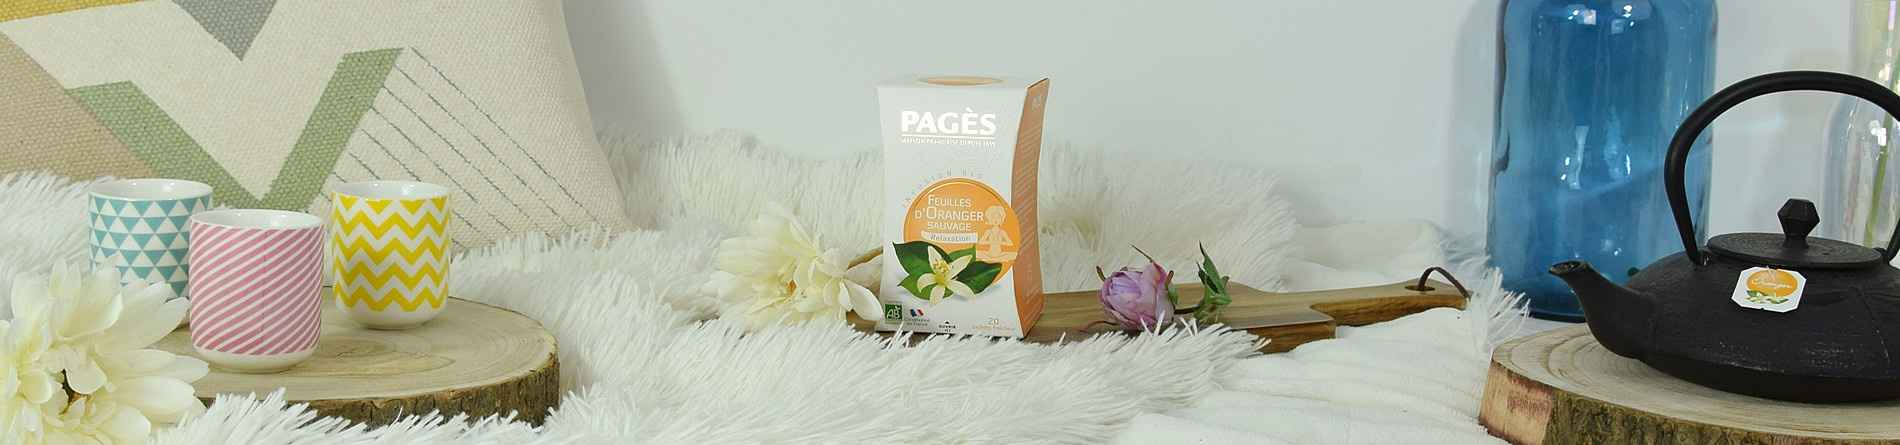 Infusion Feuilles d Oranger Sauvage Relaxation BIO Pagès 20 sachets